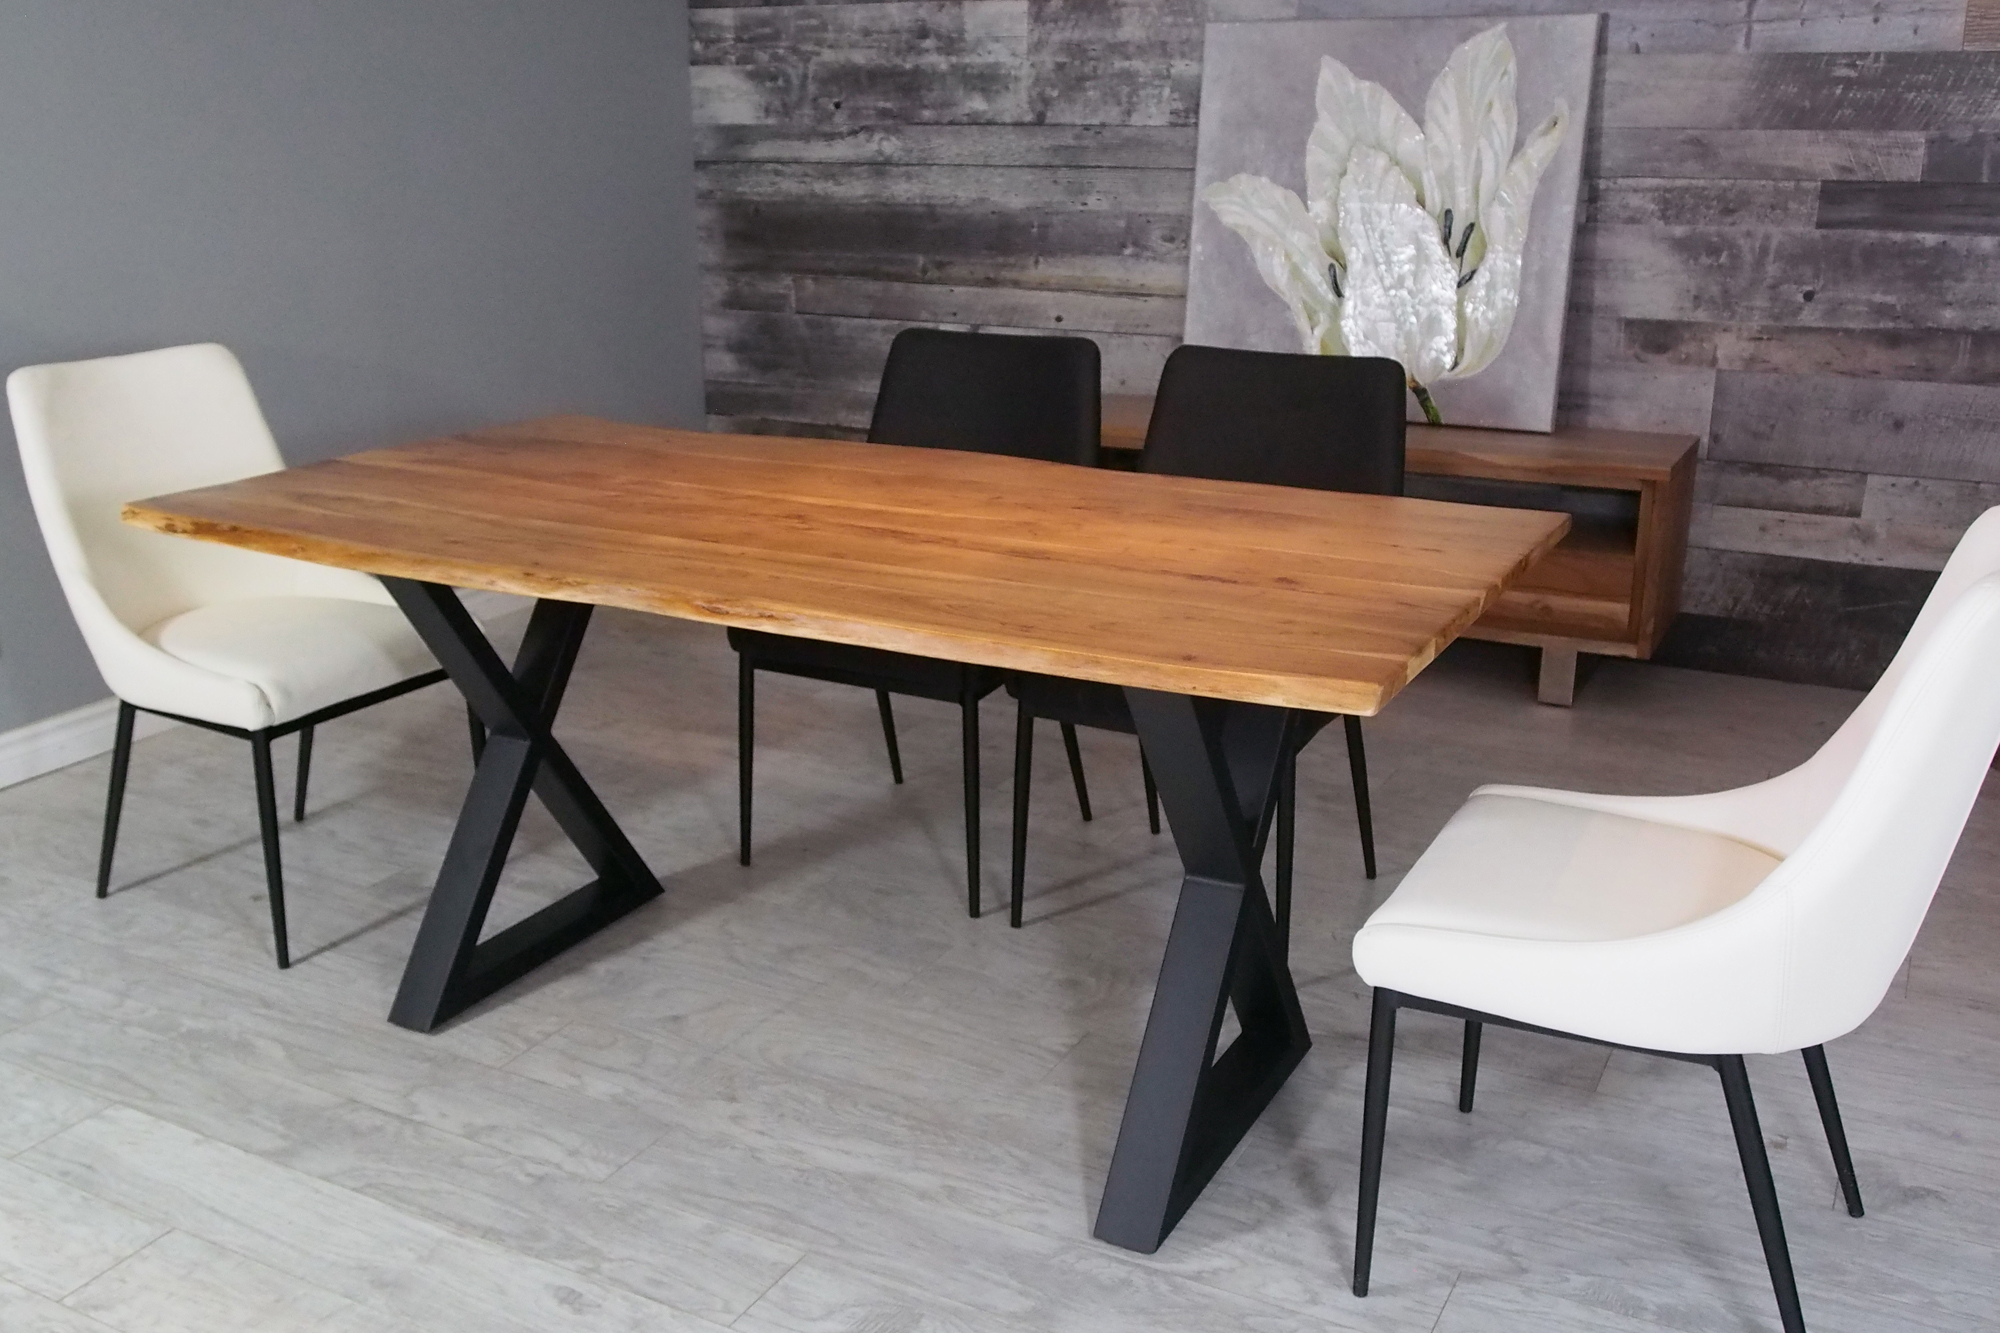 """Corcoran Acacia Live Edge Dining Table With Black X Legs – 67"""" Inside Favorite Acacia Dining Tables With Black X Leg (Gallery 21 of 30)"""